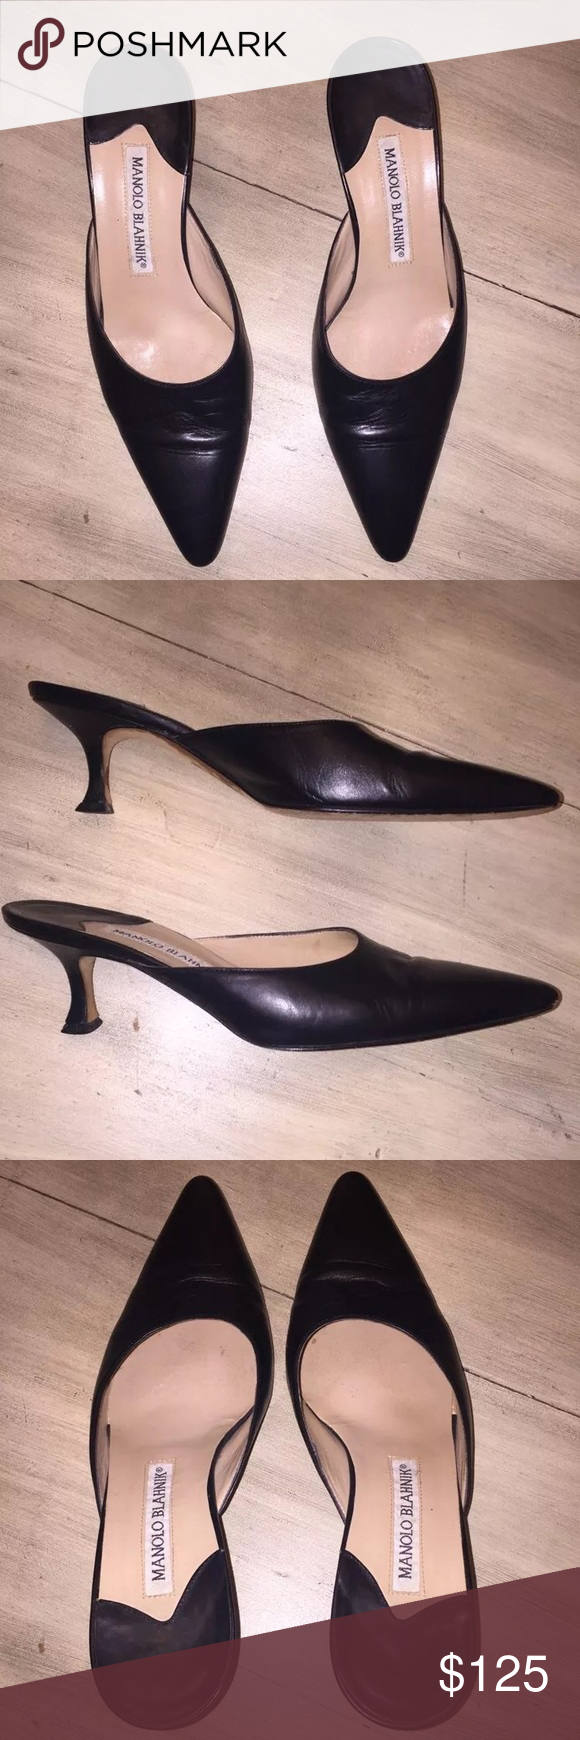 Manolo Blahnik Black Leather Kitten Heel sz 36 Manolo Blahnik black leather kitten heel shoes. Size 36. Made in Italy. In good condition with slight wear overall, but nothing major. Still have a lot of life in them. Manolo Blahnik Shoes Heels